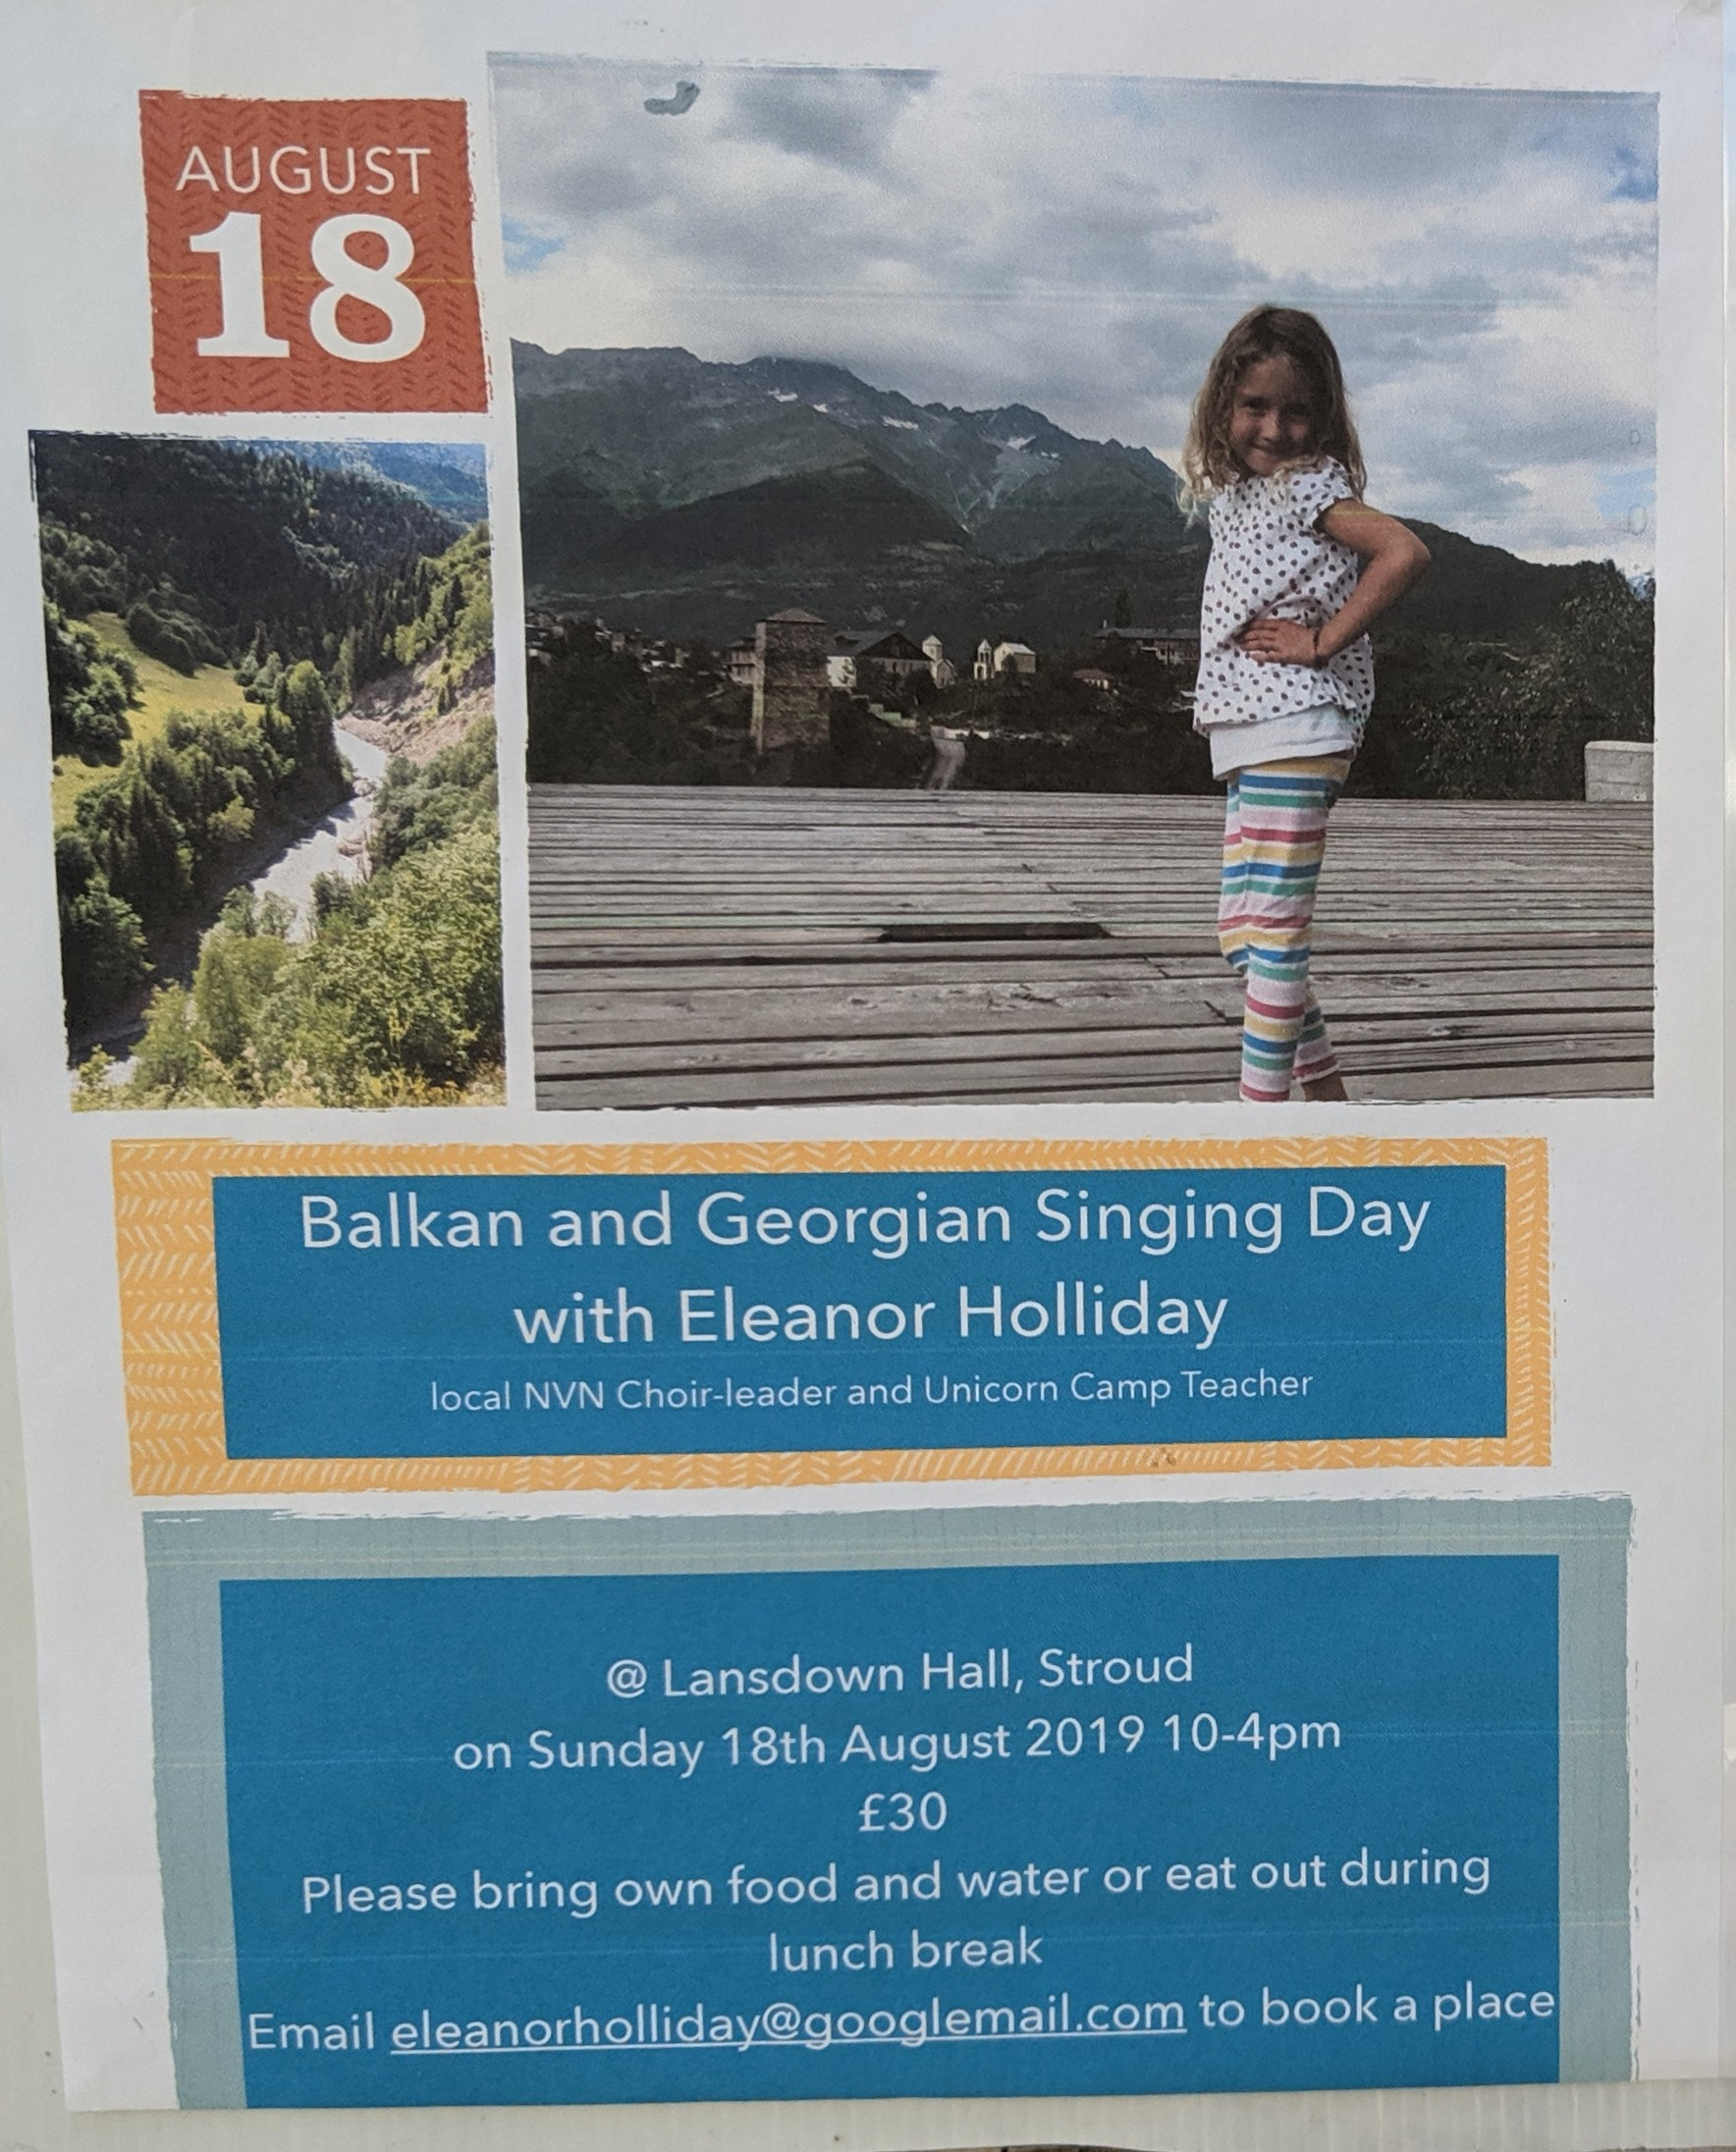 Balkan and Georgian Singing Day